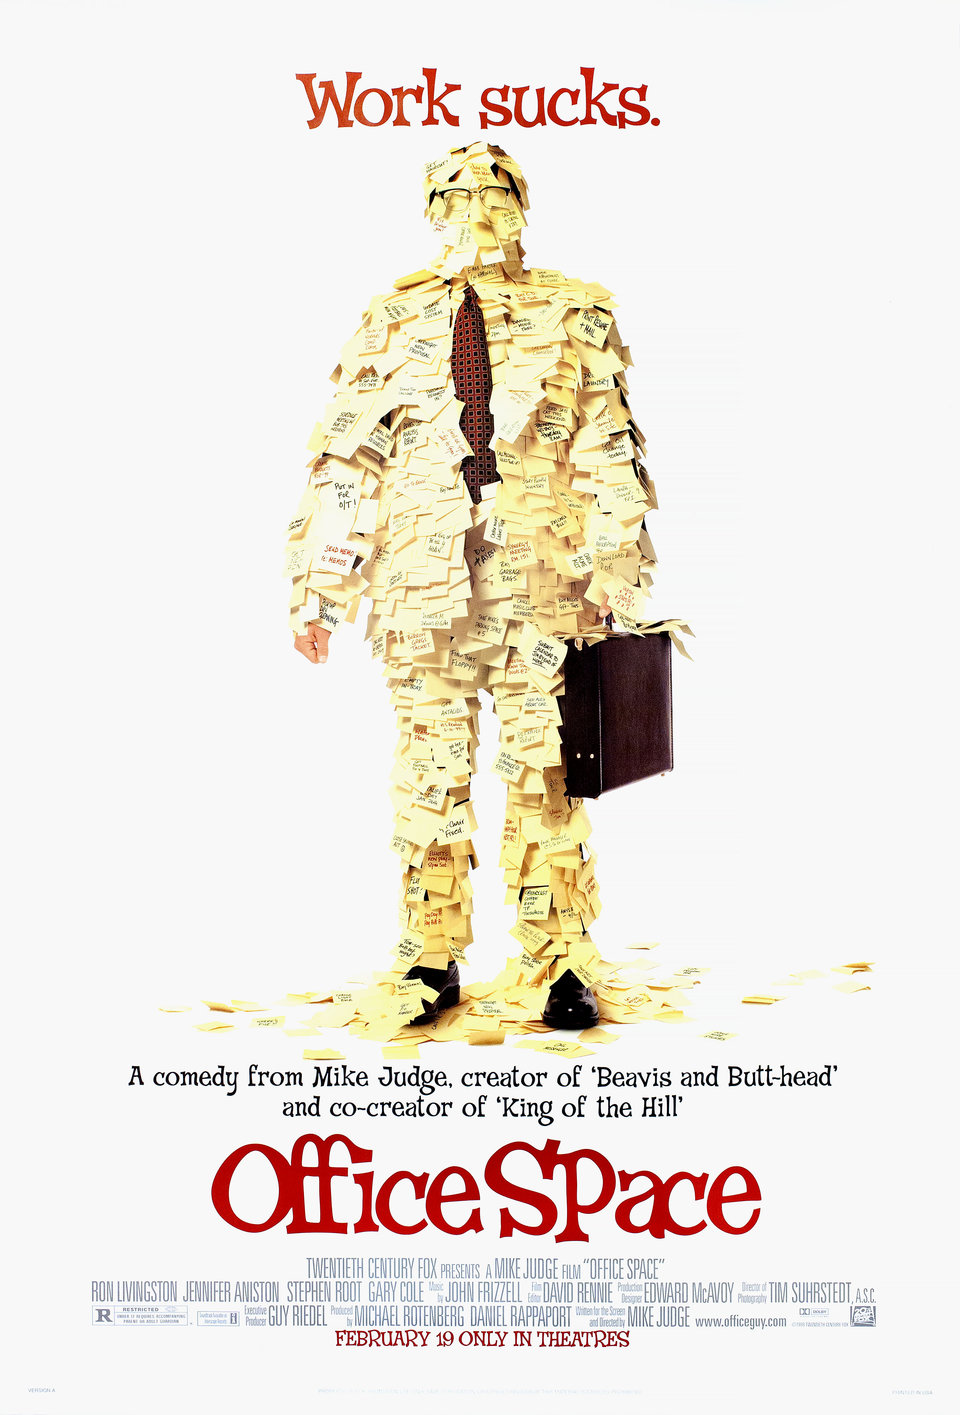 Office Space 1999 U.S. One Sheet Poster